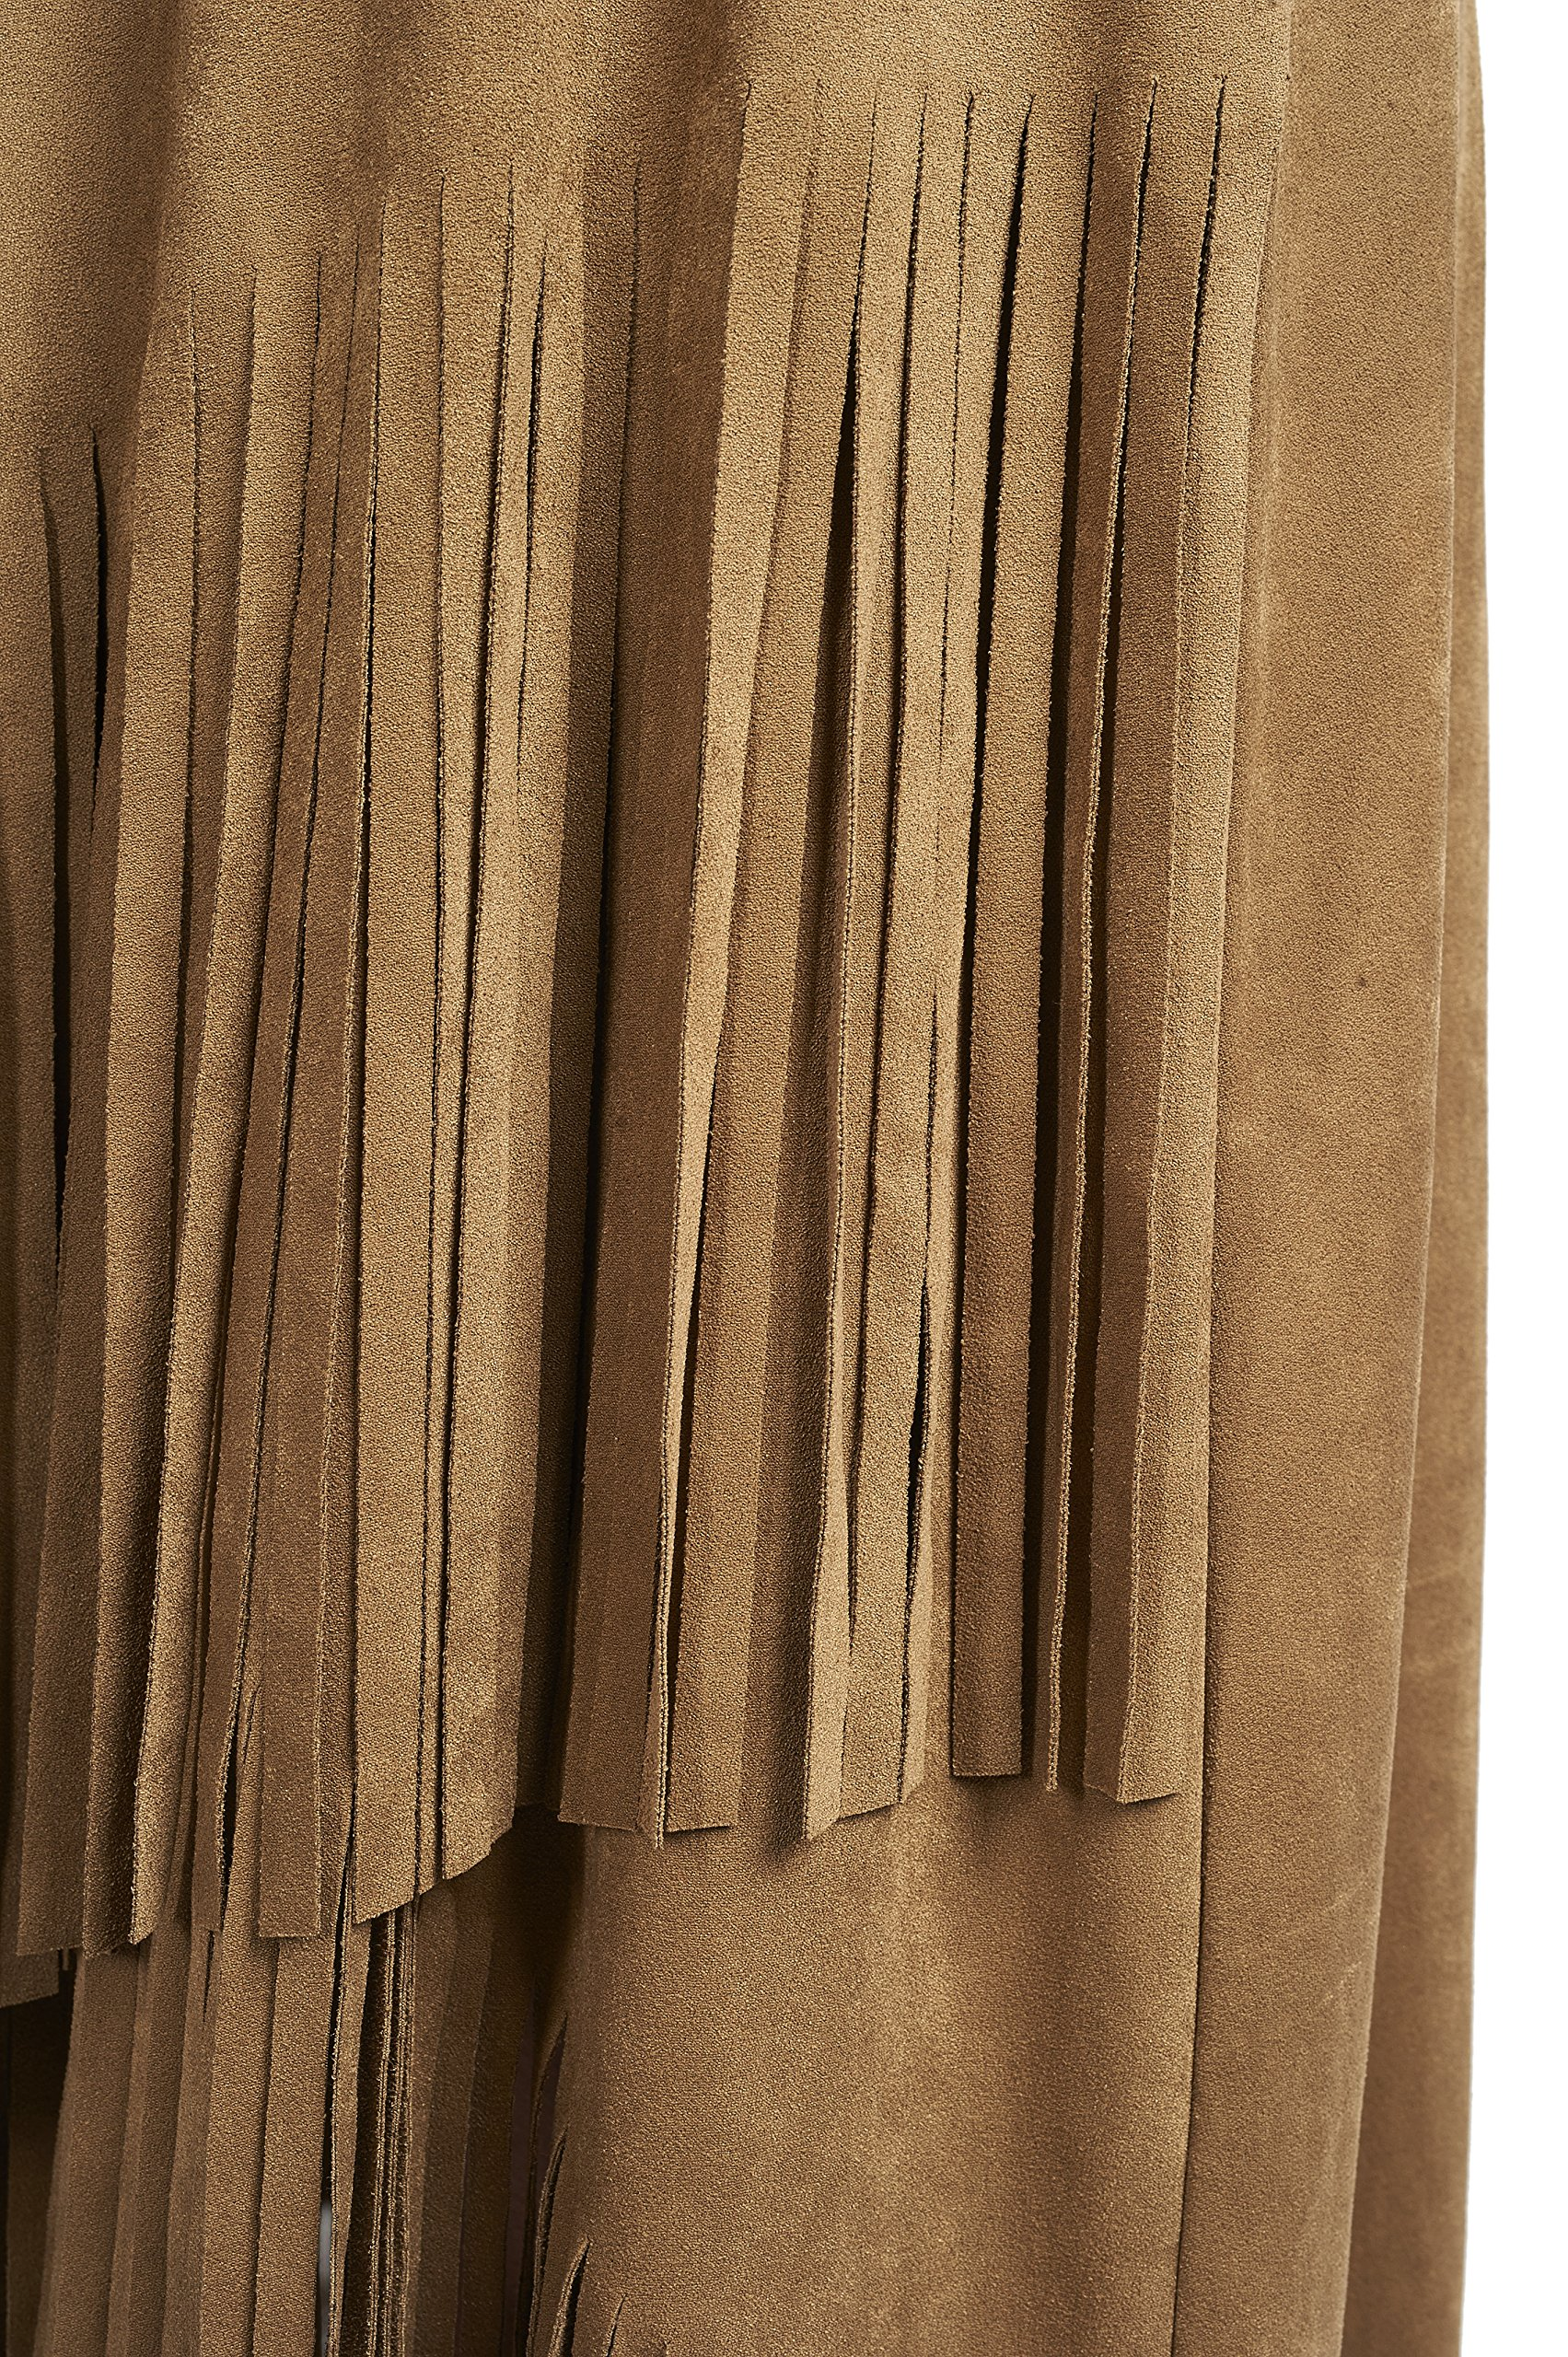 Joseph Ribkoff Faux Suede Asymmetric Skirt with Fringe Style 171388 - Size 14 by Joseph Ribkoff (Image #3)